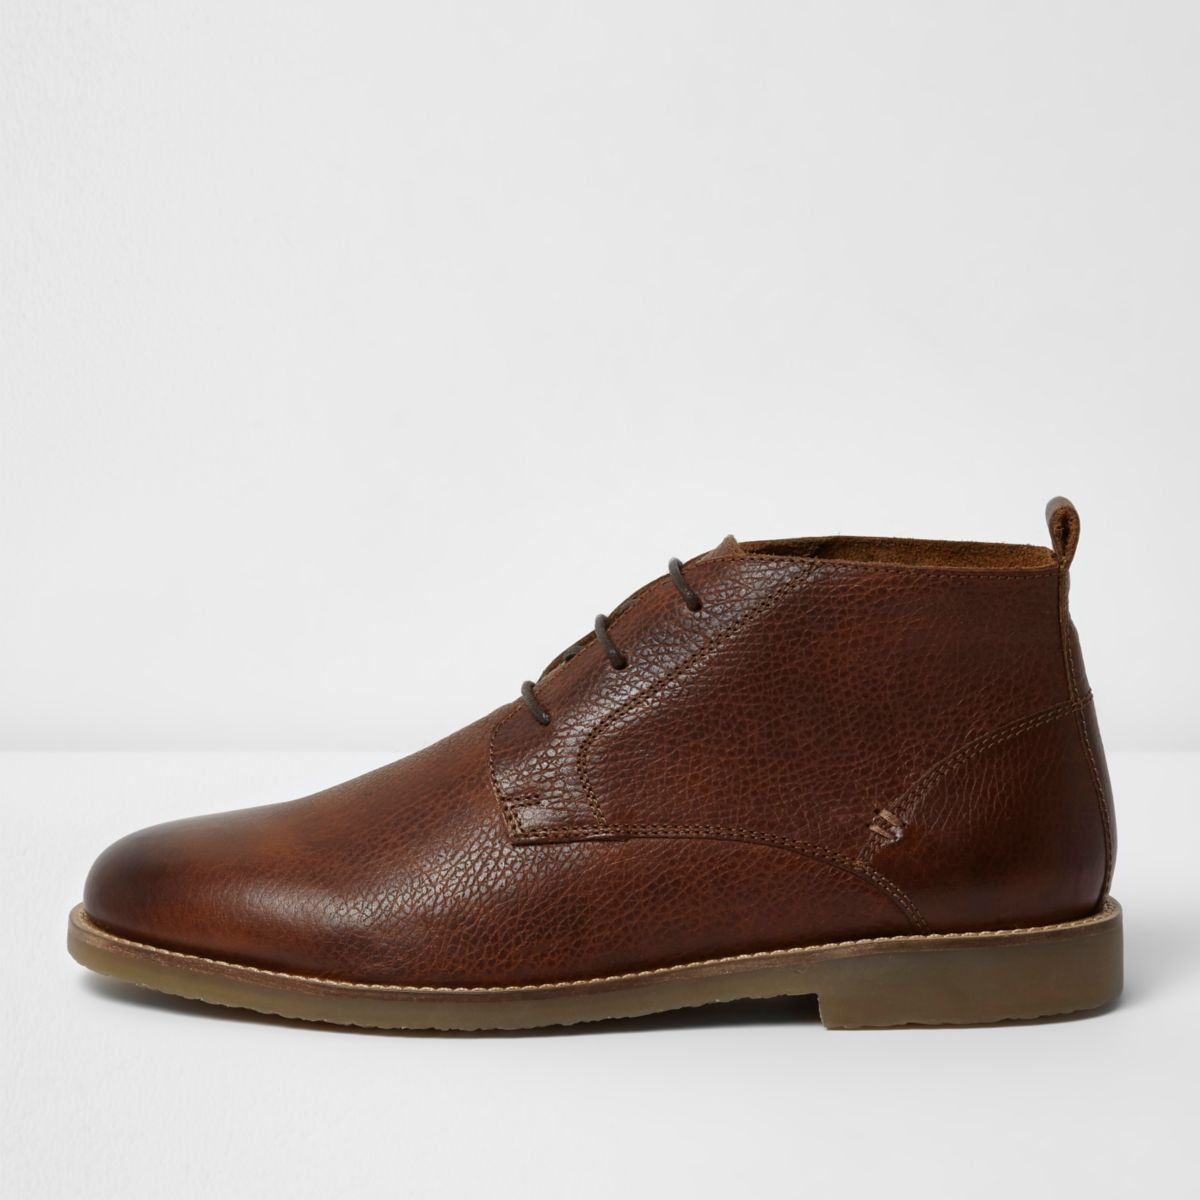 Shop Men's Desert Boots. rabbetedh.ga has the greatest selection of desert boots for men in smooth and suede leather. Choose from various widths, colours and sizes from UK size 3 to